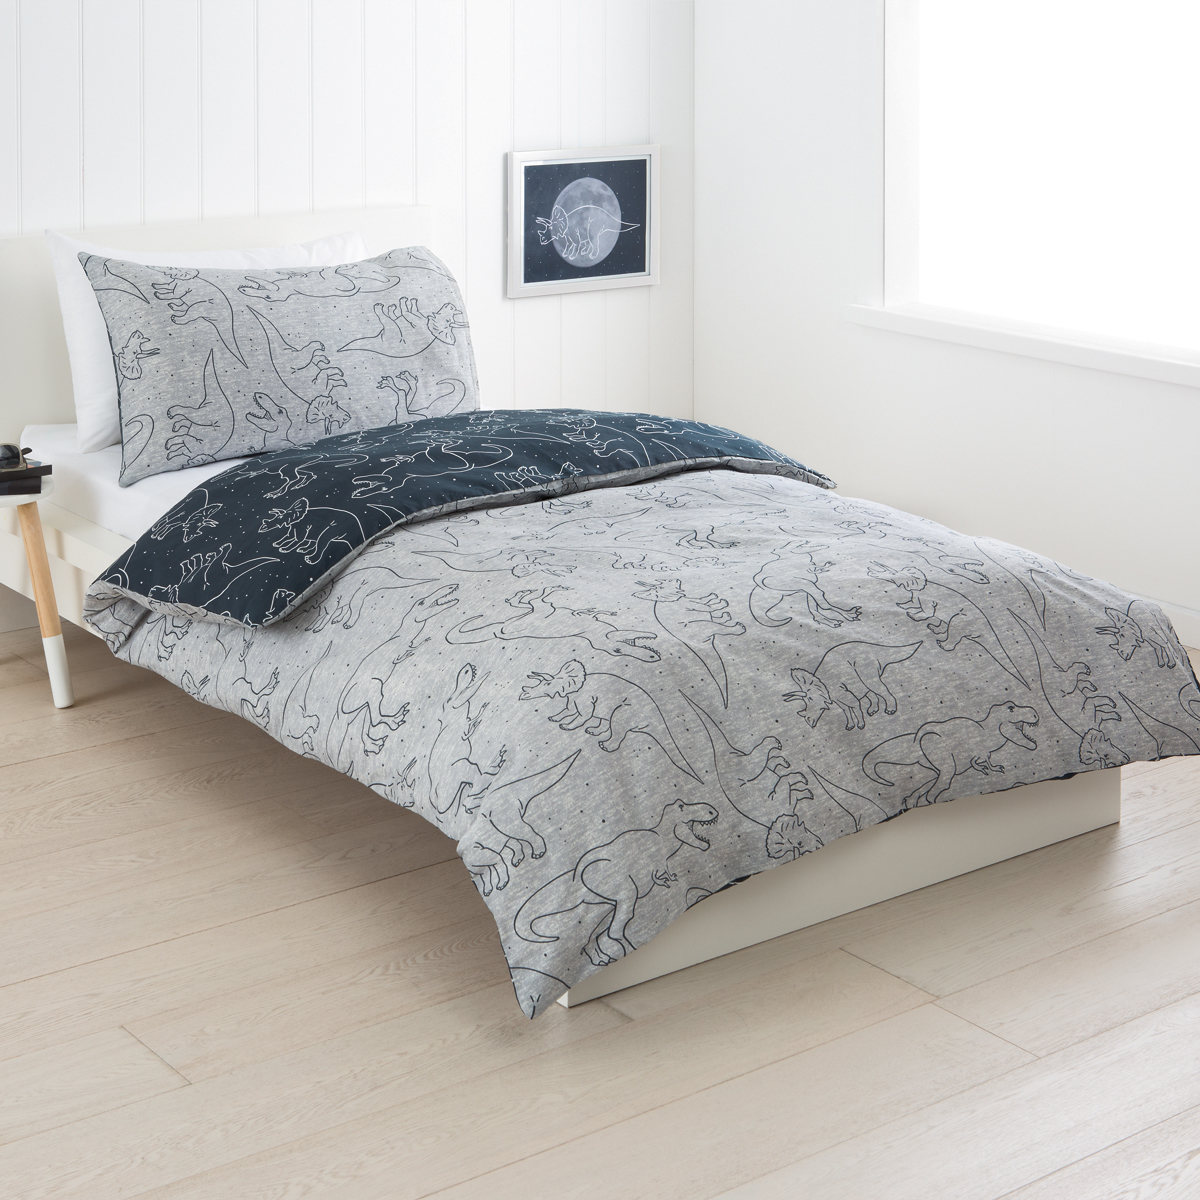 Queen Size Bed Sets | Kmart Crib Bedding Sets | Kmart Bed Sets